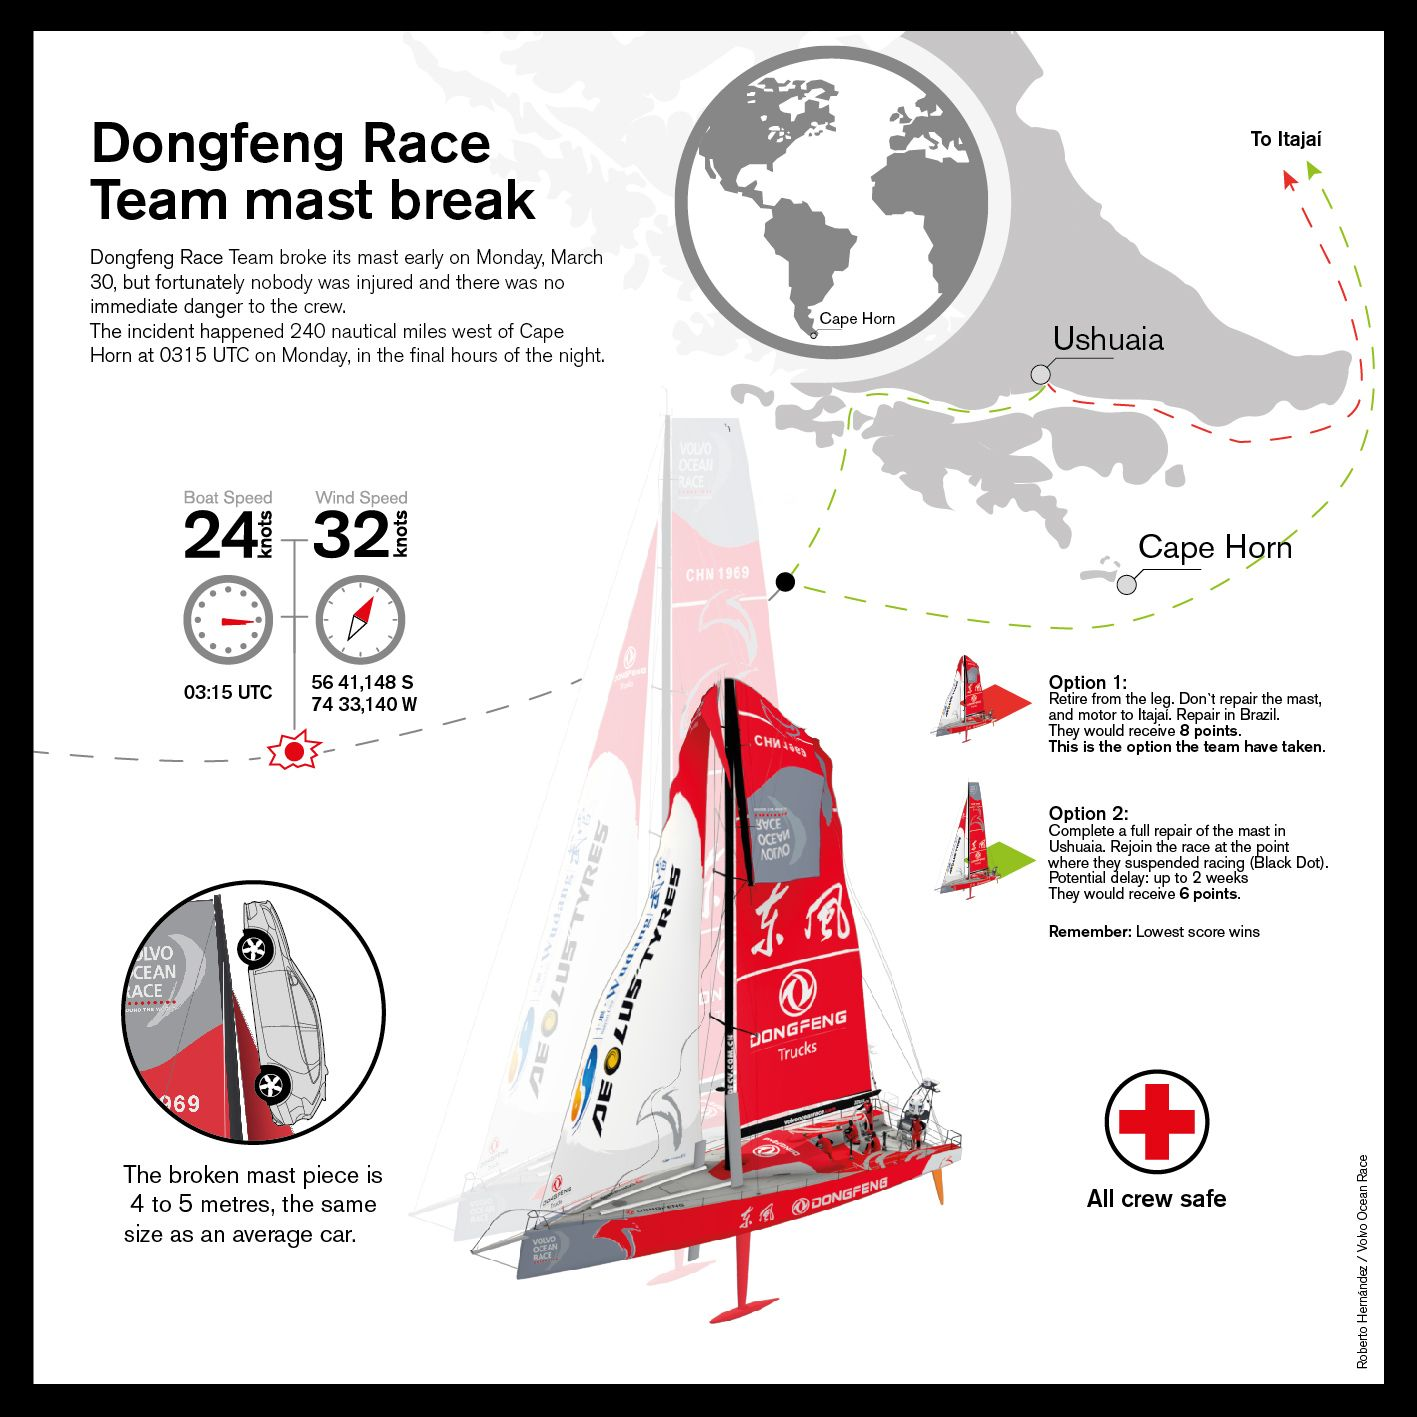 Interesting facts about Dongfeng Race Team's mast breakage, west of Cape Horn on March 30 during Leg 5 to Itajaí.